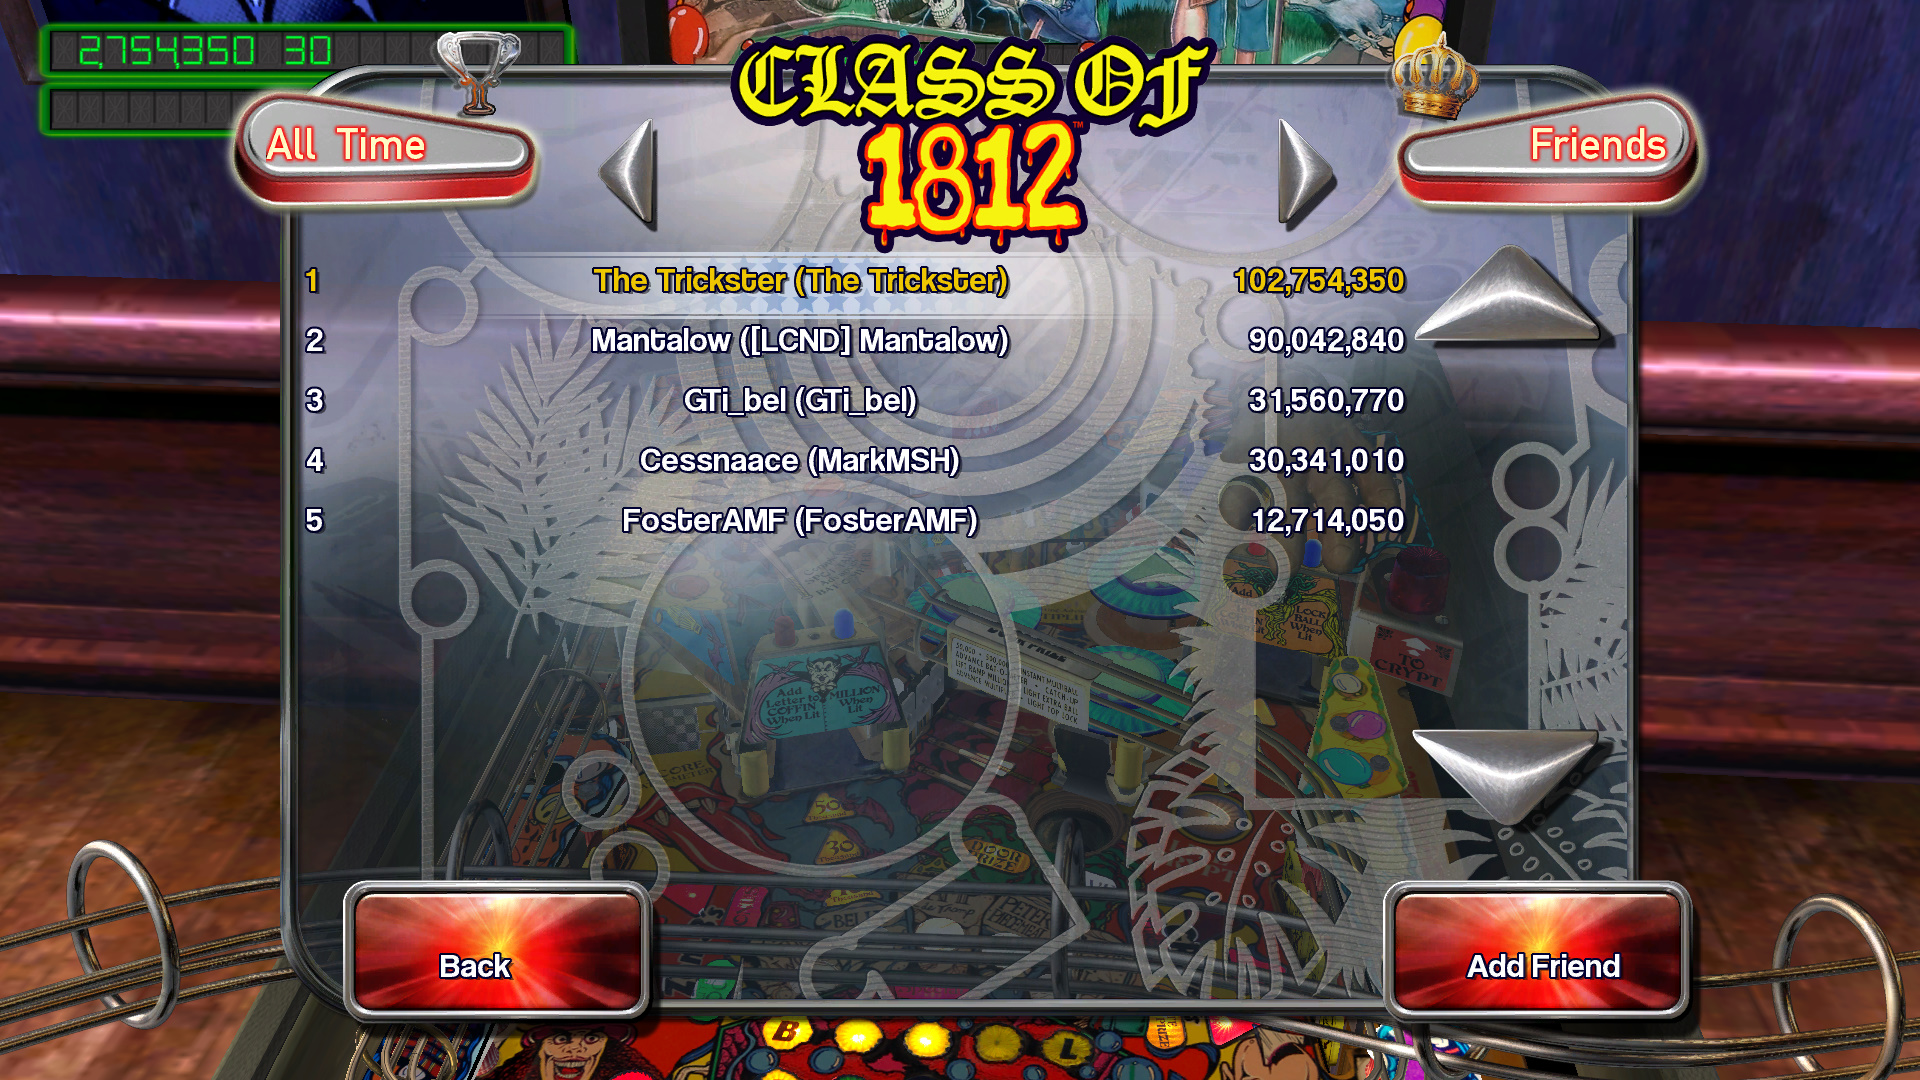 TheTrickster: Pinball Arcade: Class of 1812 (PC) 102,754,350 points on 2015-10-19 06:40:34